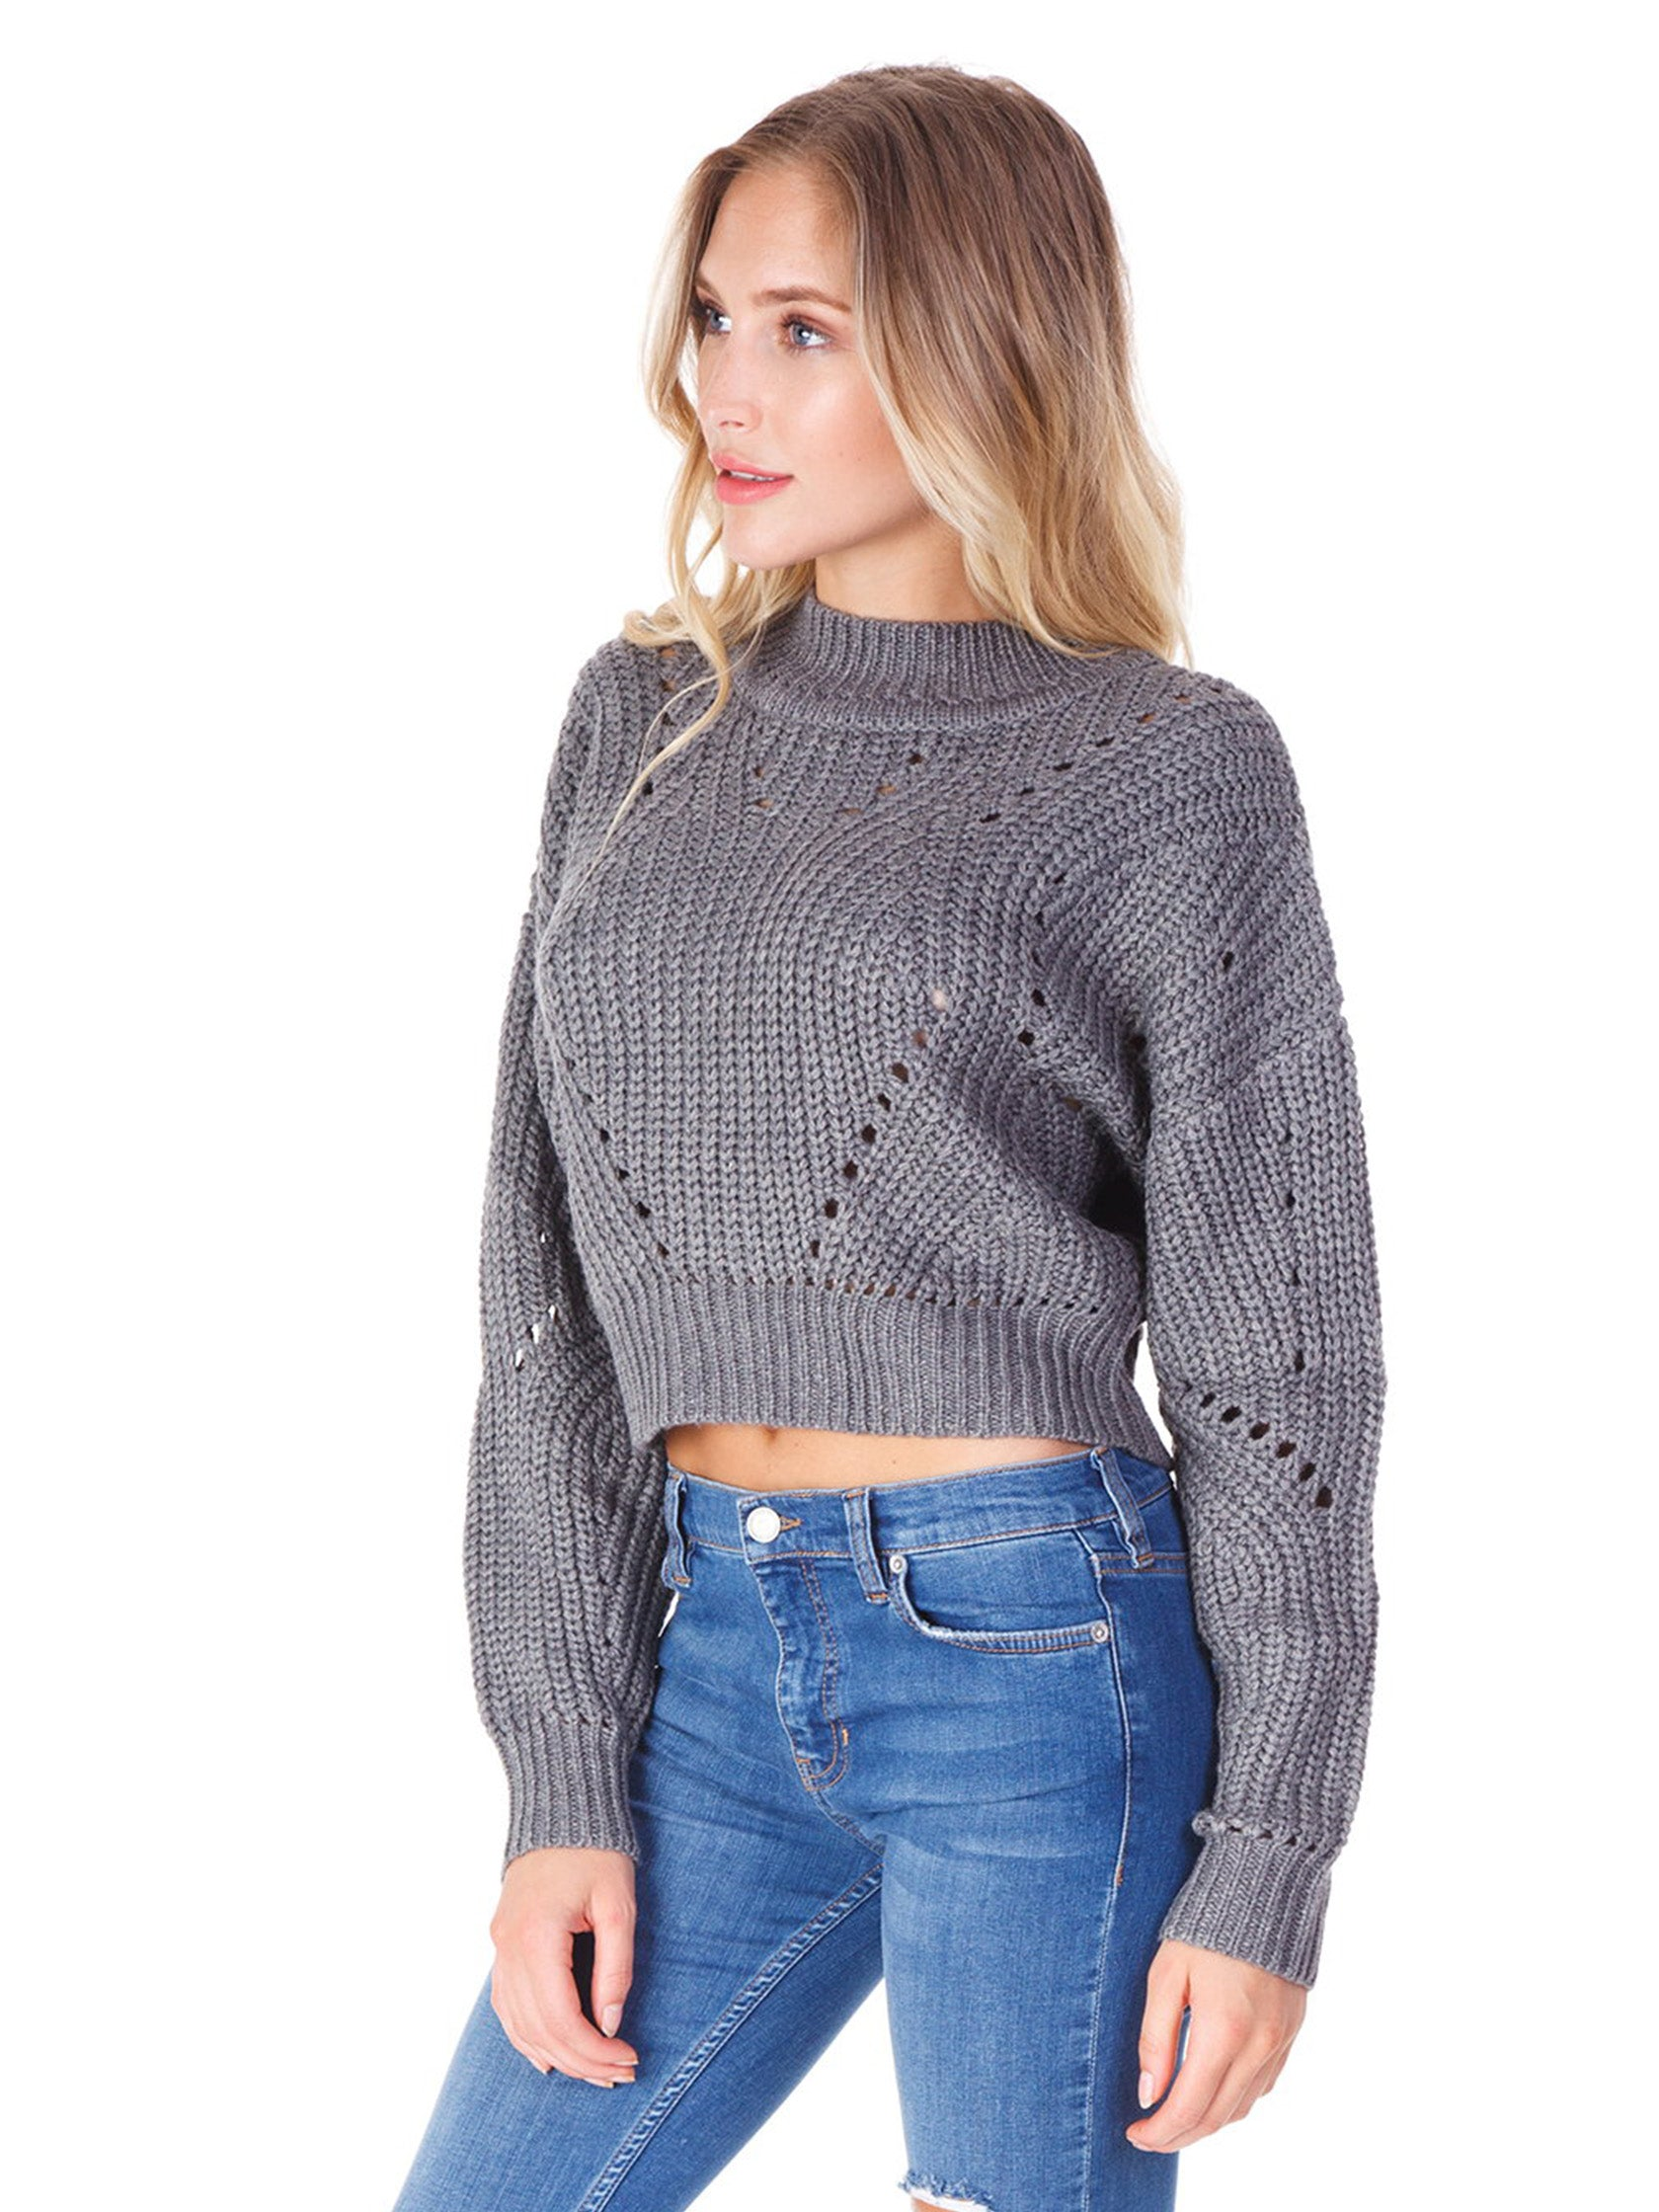 Women wearing a sweater rental from ASTR called Carly Sweater